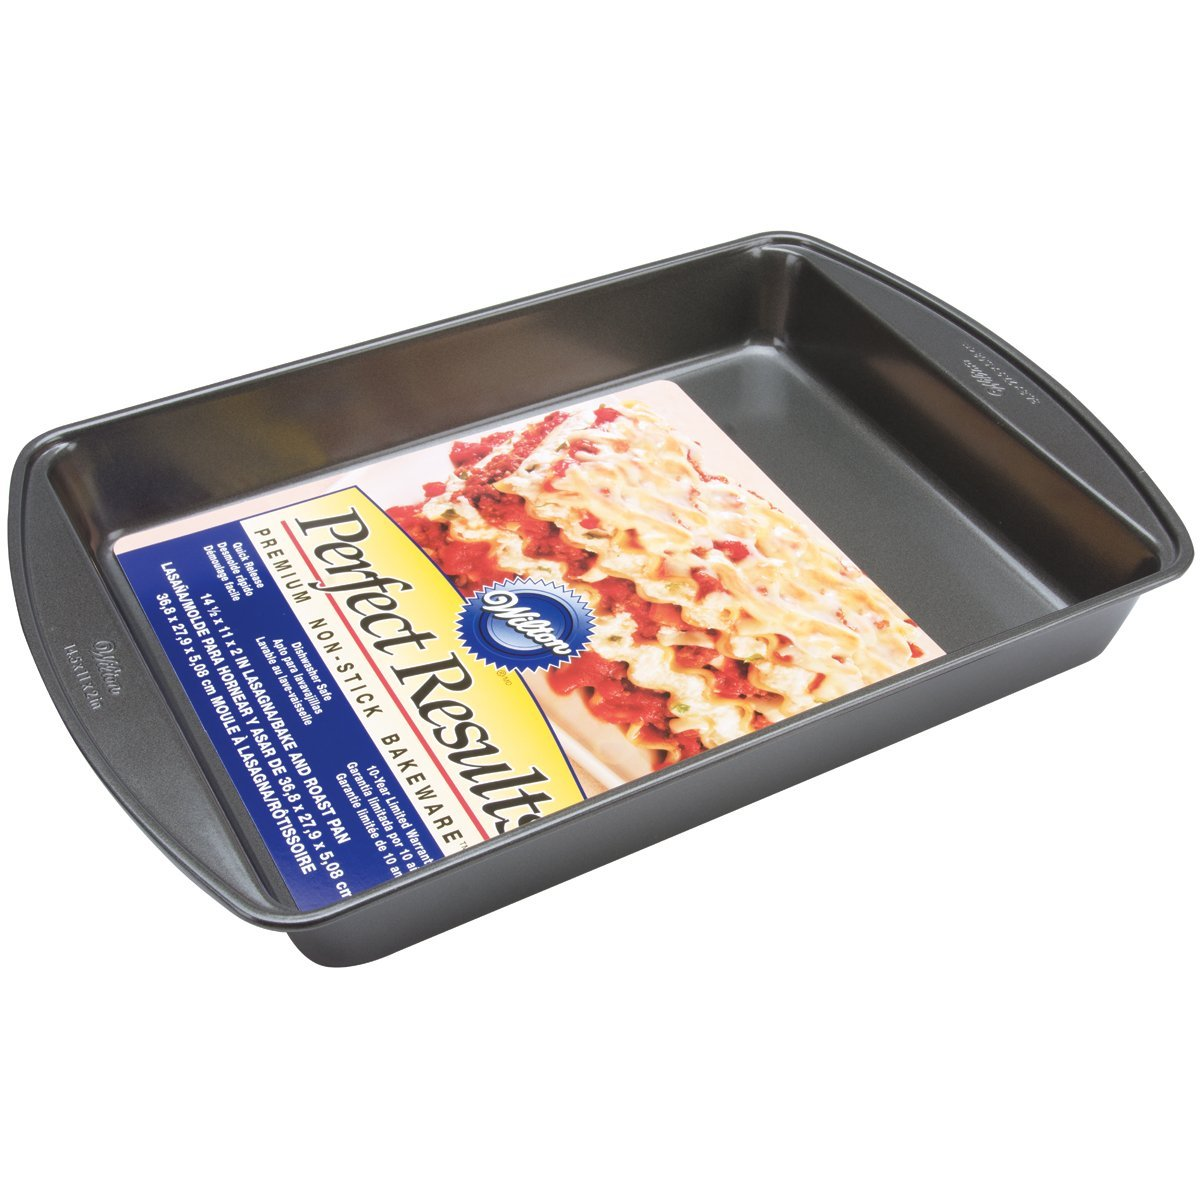 Wilton Nonstick Lasagna and Roasting Pan - 14.5-Inch by Wilton